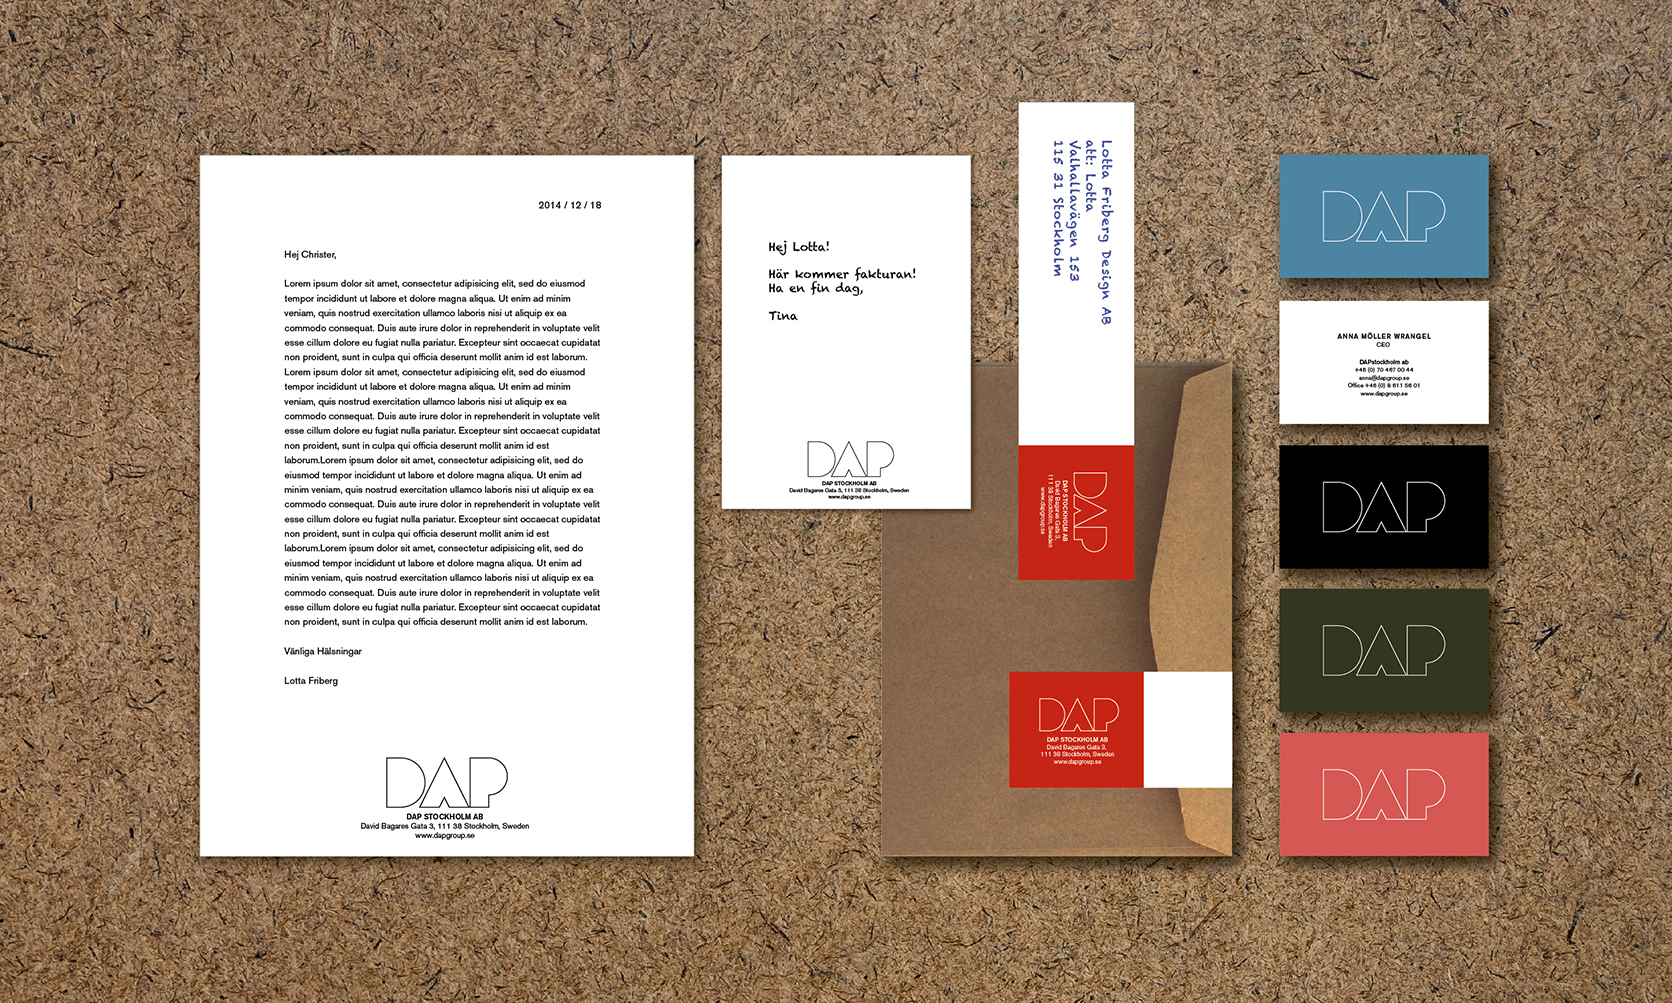 DAP stationery